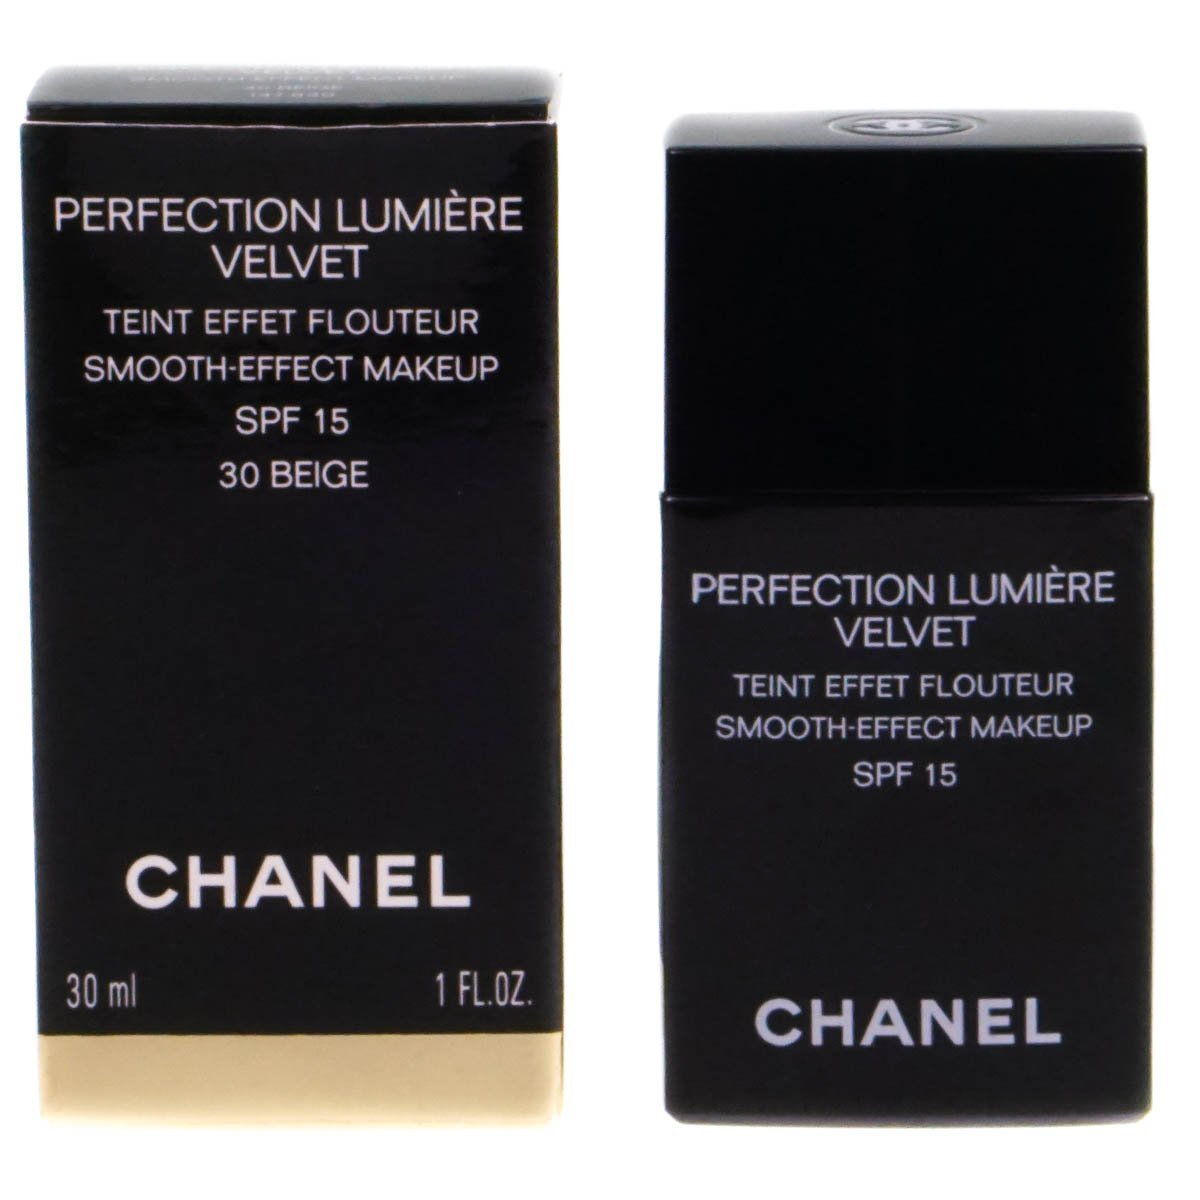 Amazon.com : Chanel - Perfection Lumiere Velvet Smooth Effect Makeup SPF15 - # 30 Beige - 30ml/1oz : Beauty